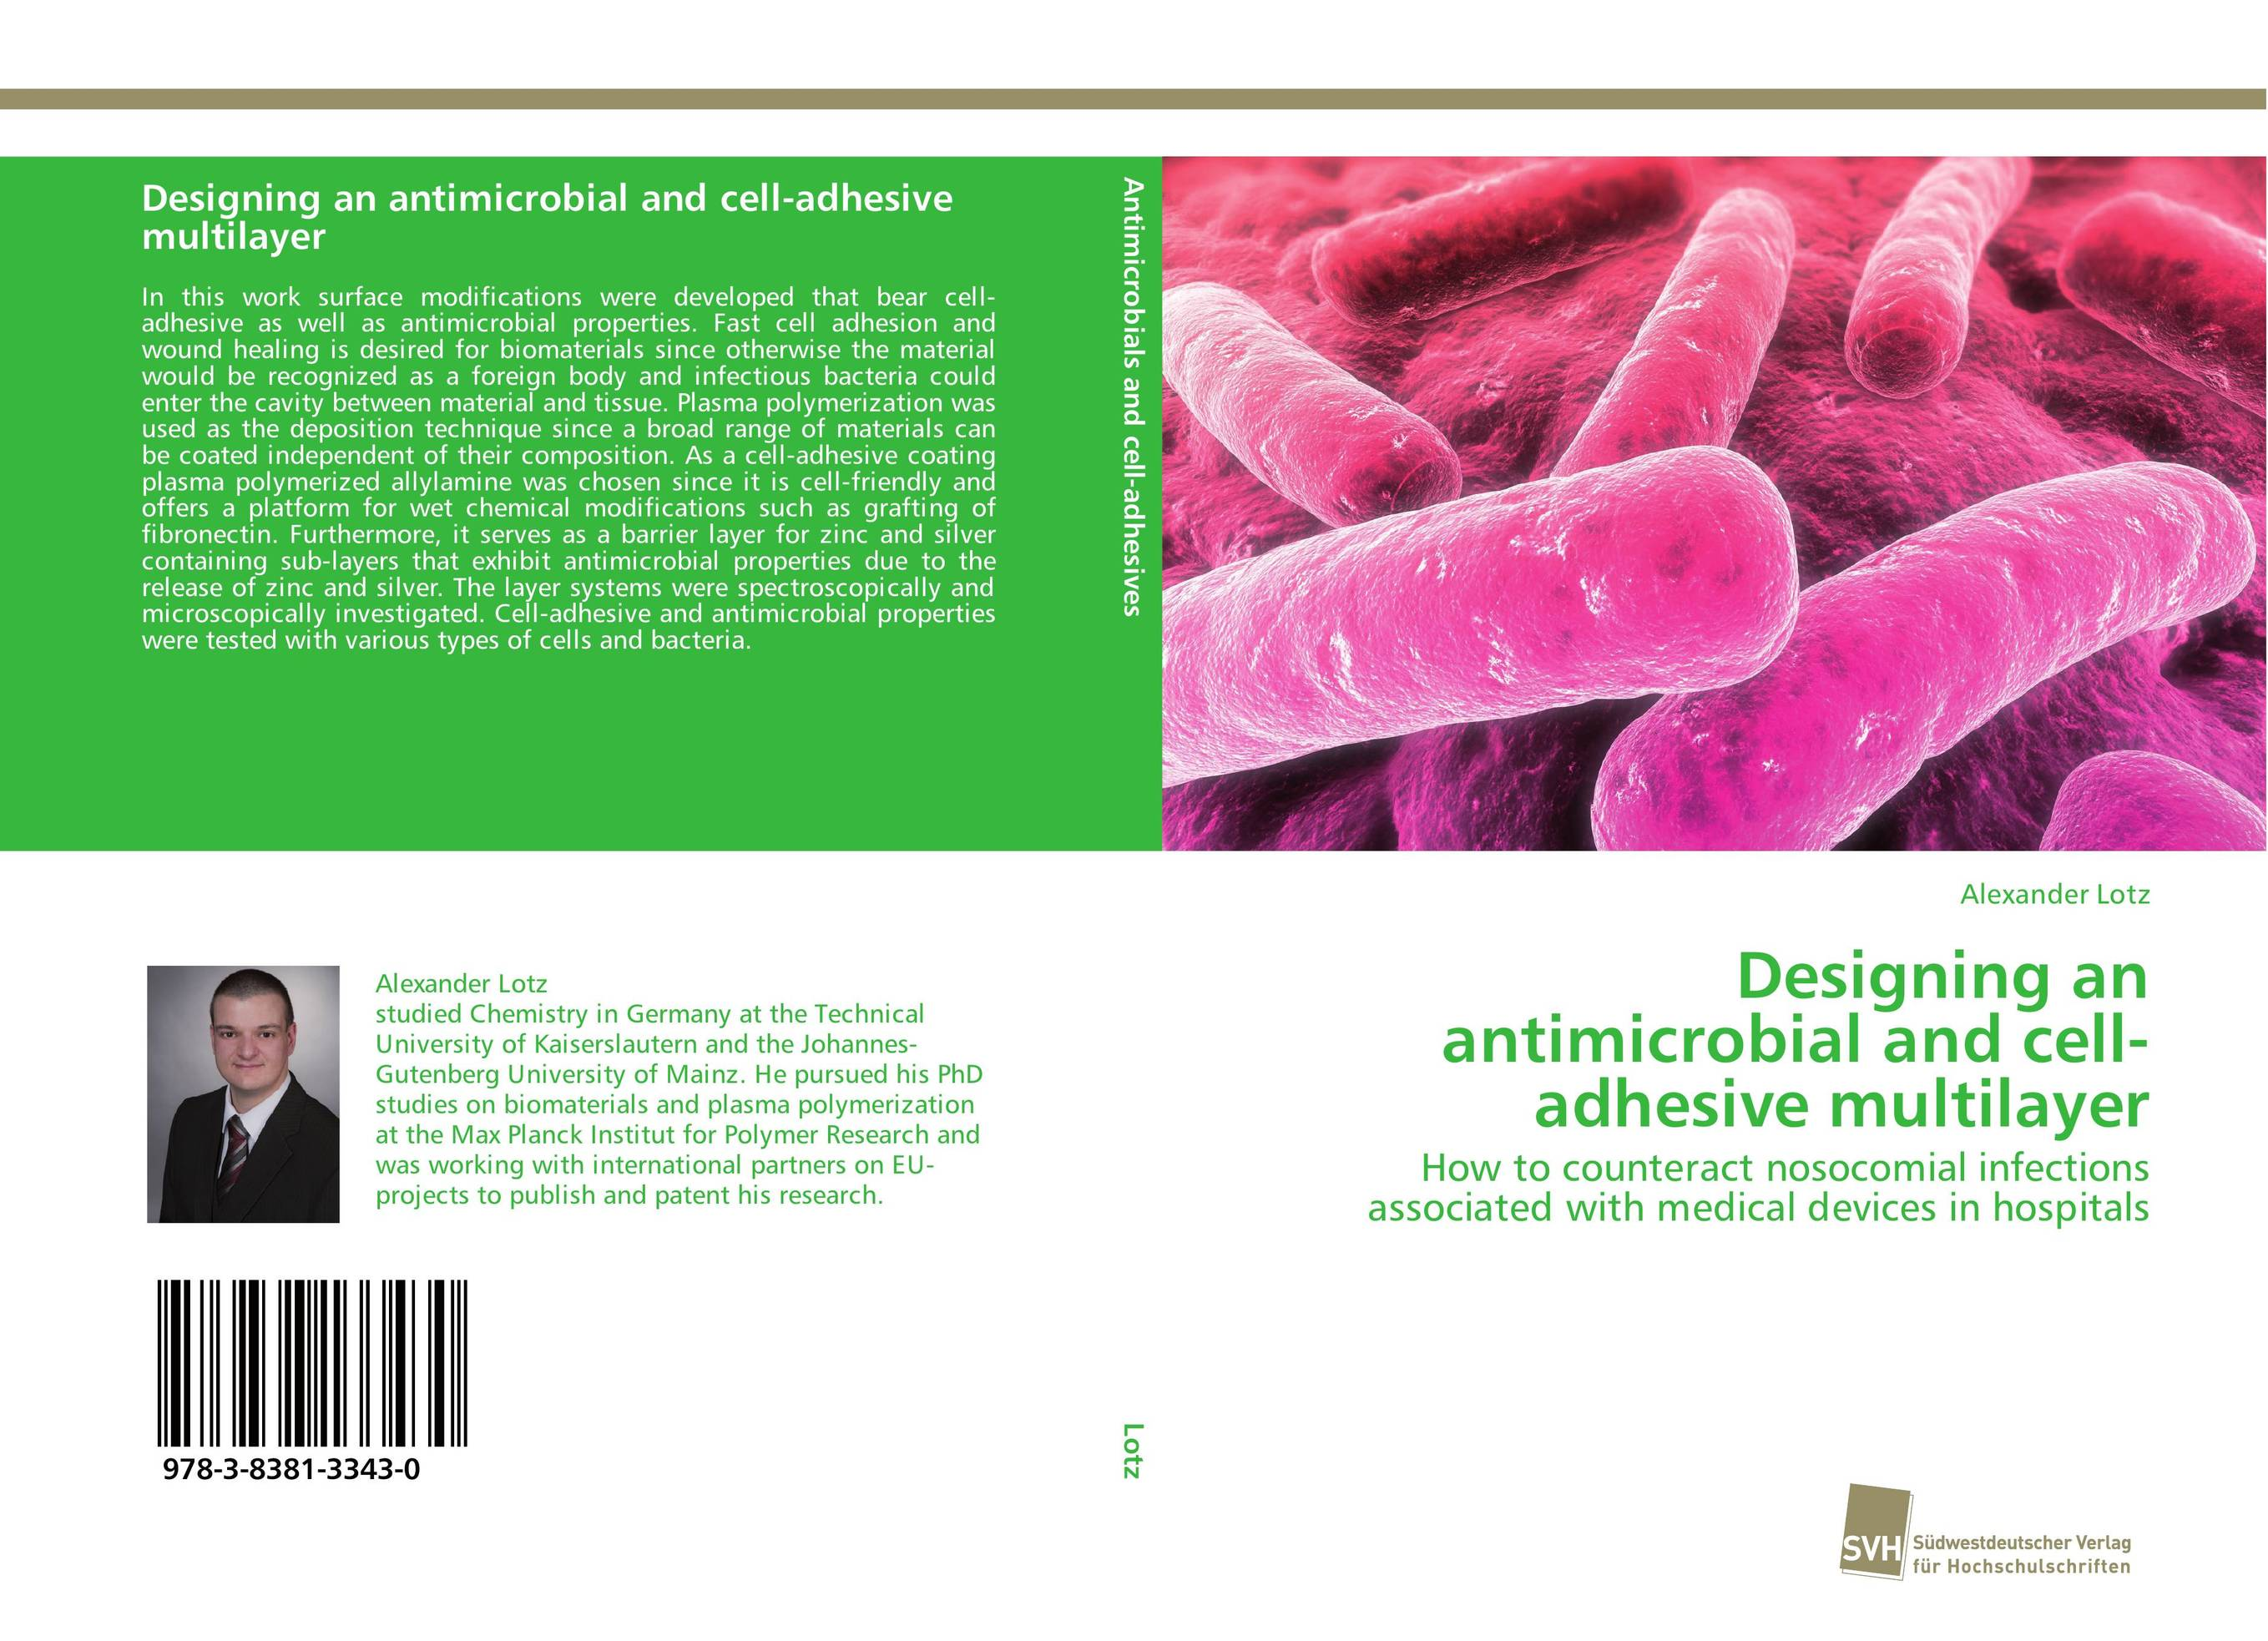 Designing an antimicrobial and cell-adhesive multilayer antimicrobial properties of acorus calamus